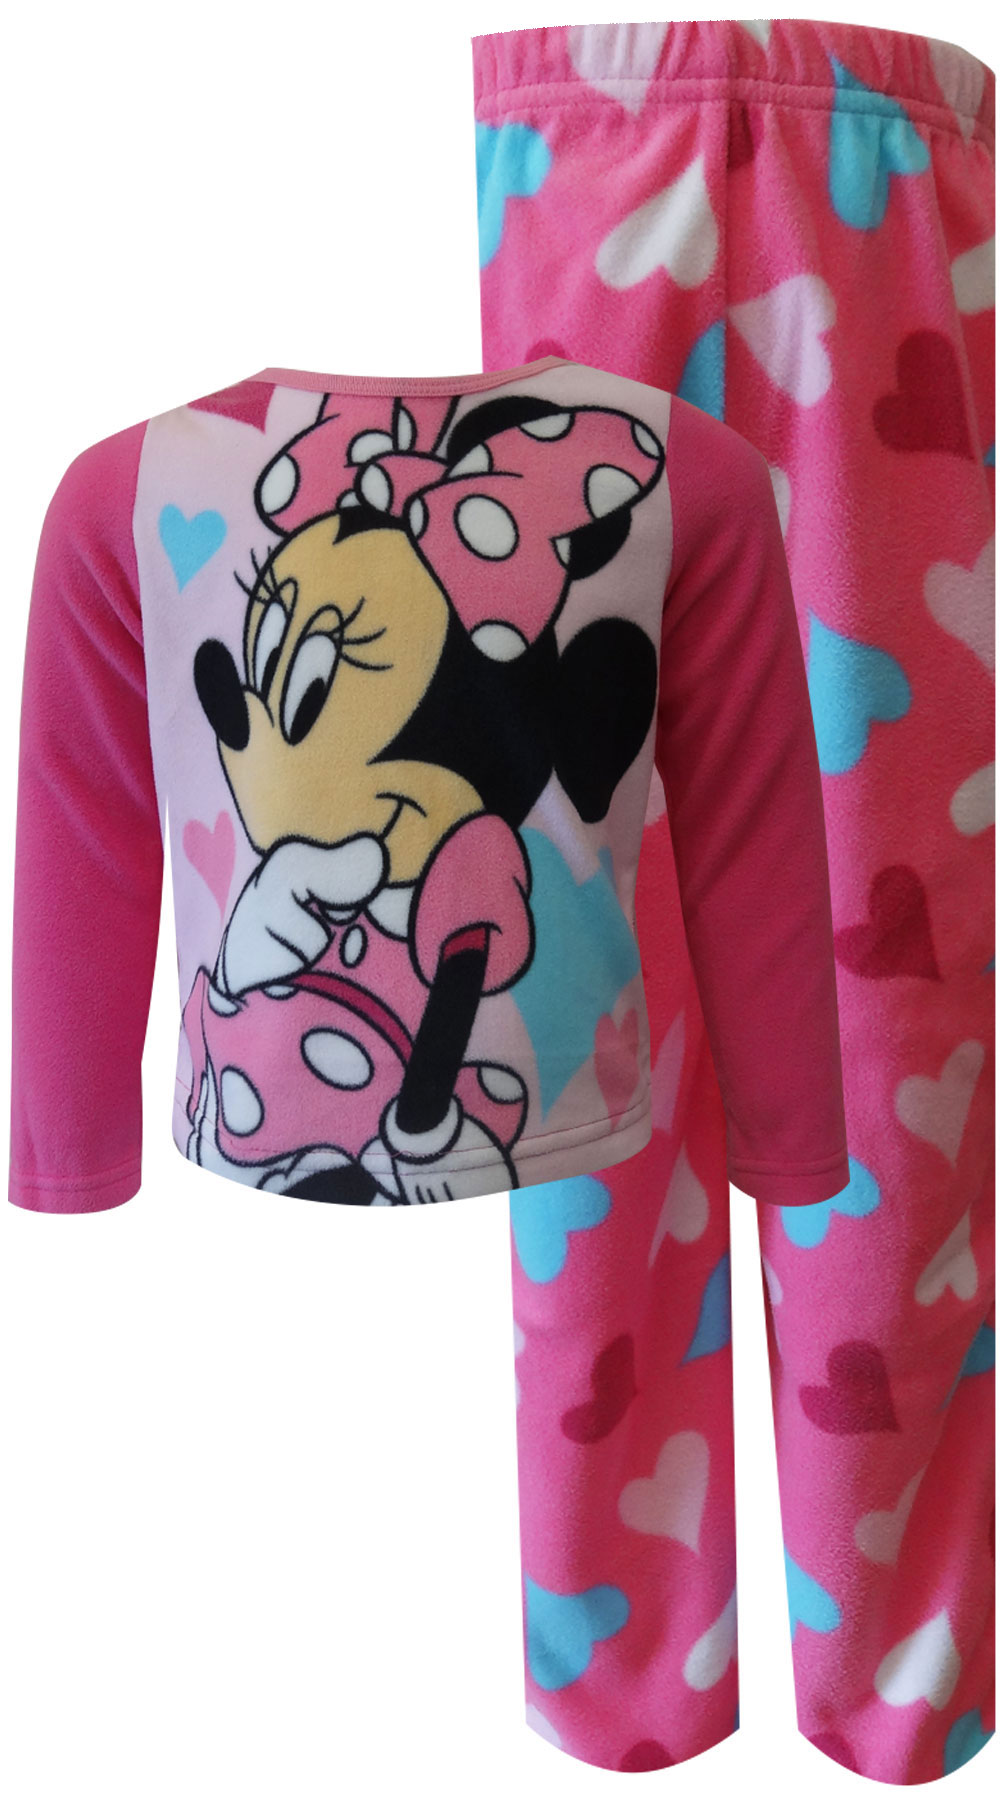 Image of Disney Minnie Mouse Pink Fleece Toddler Pajamas for girls